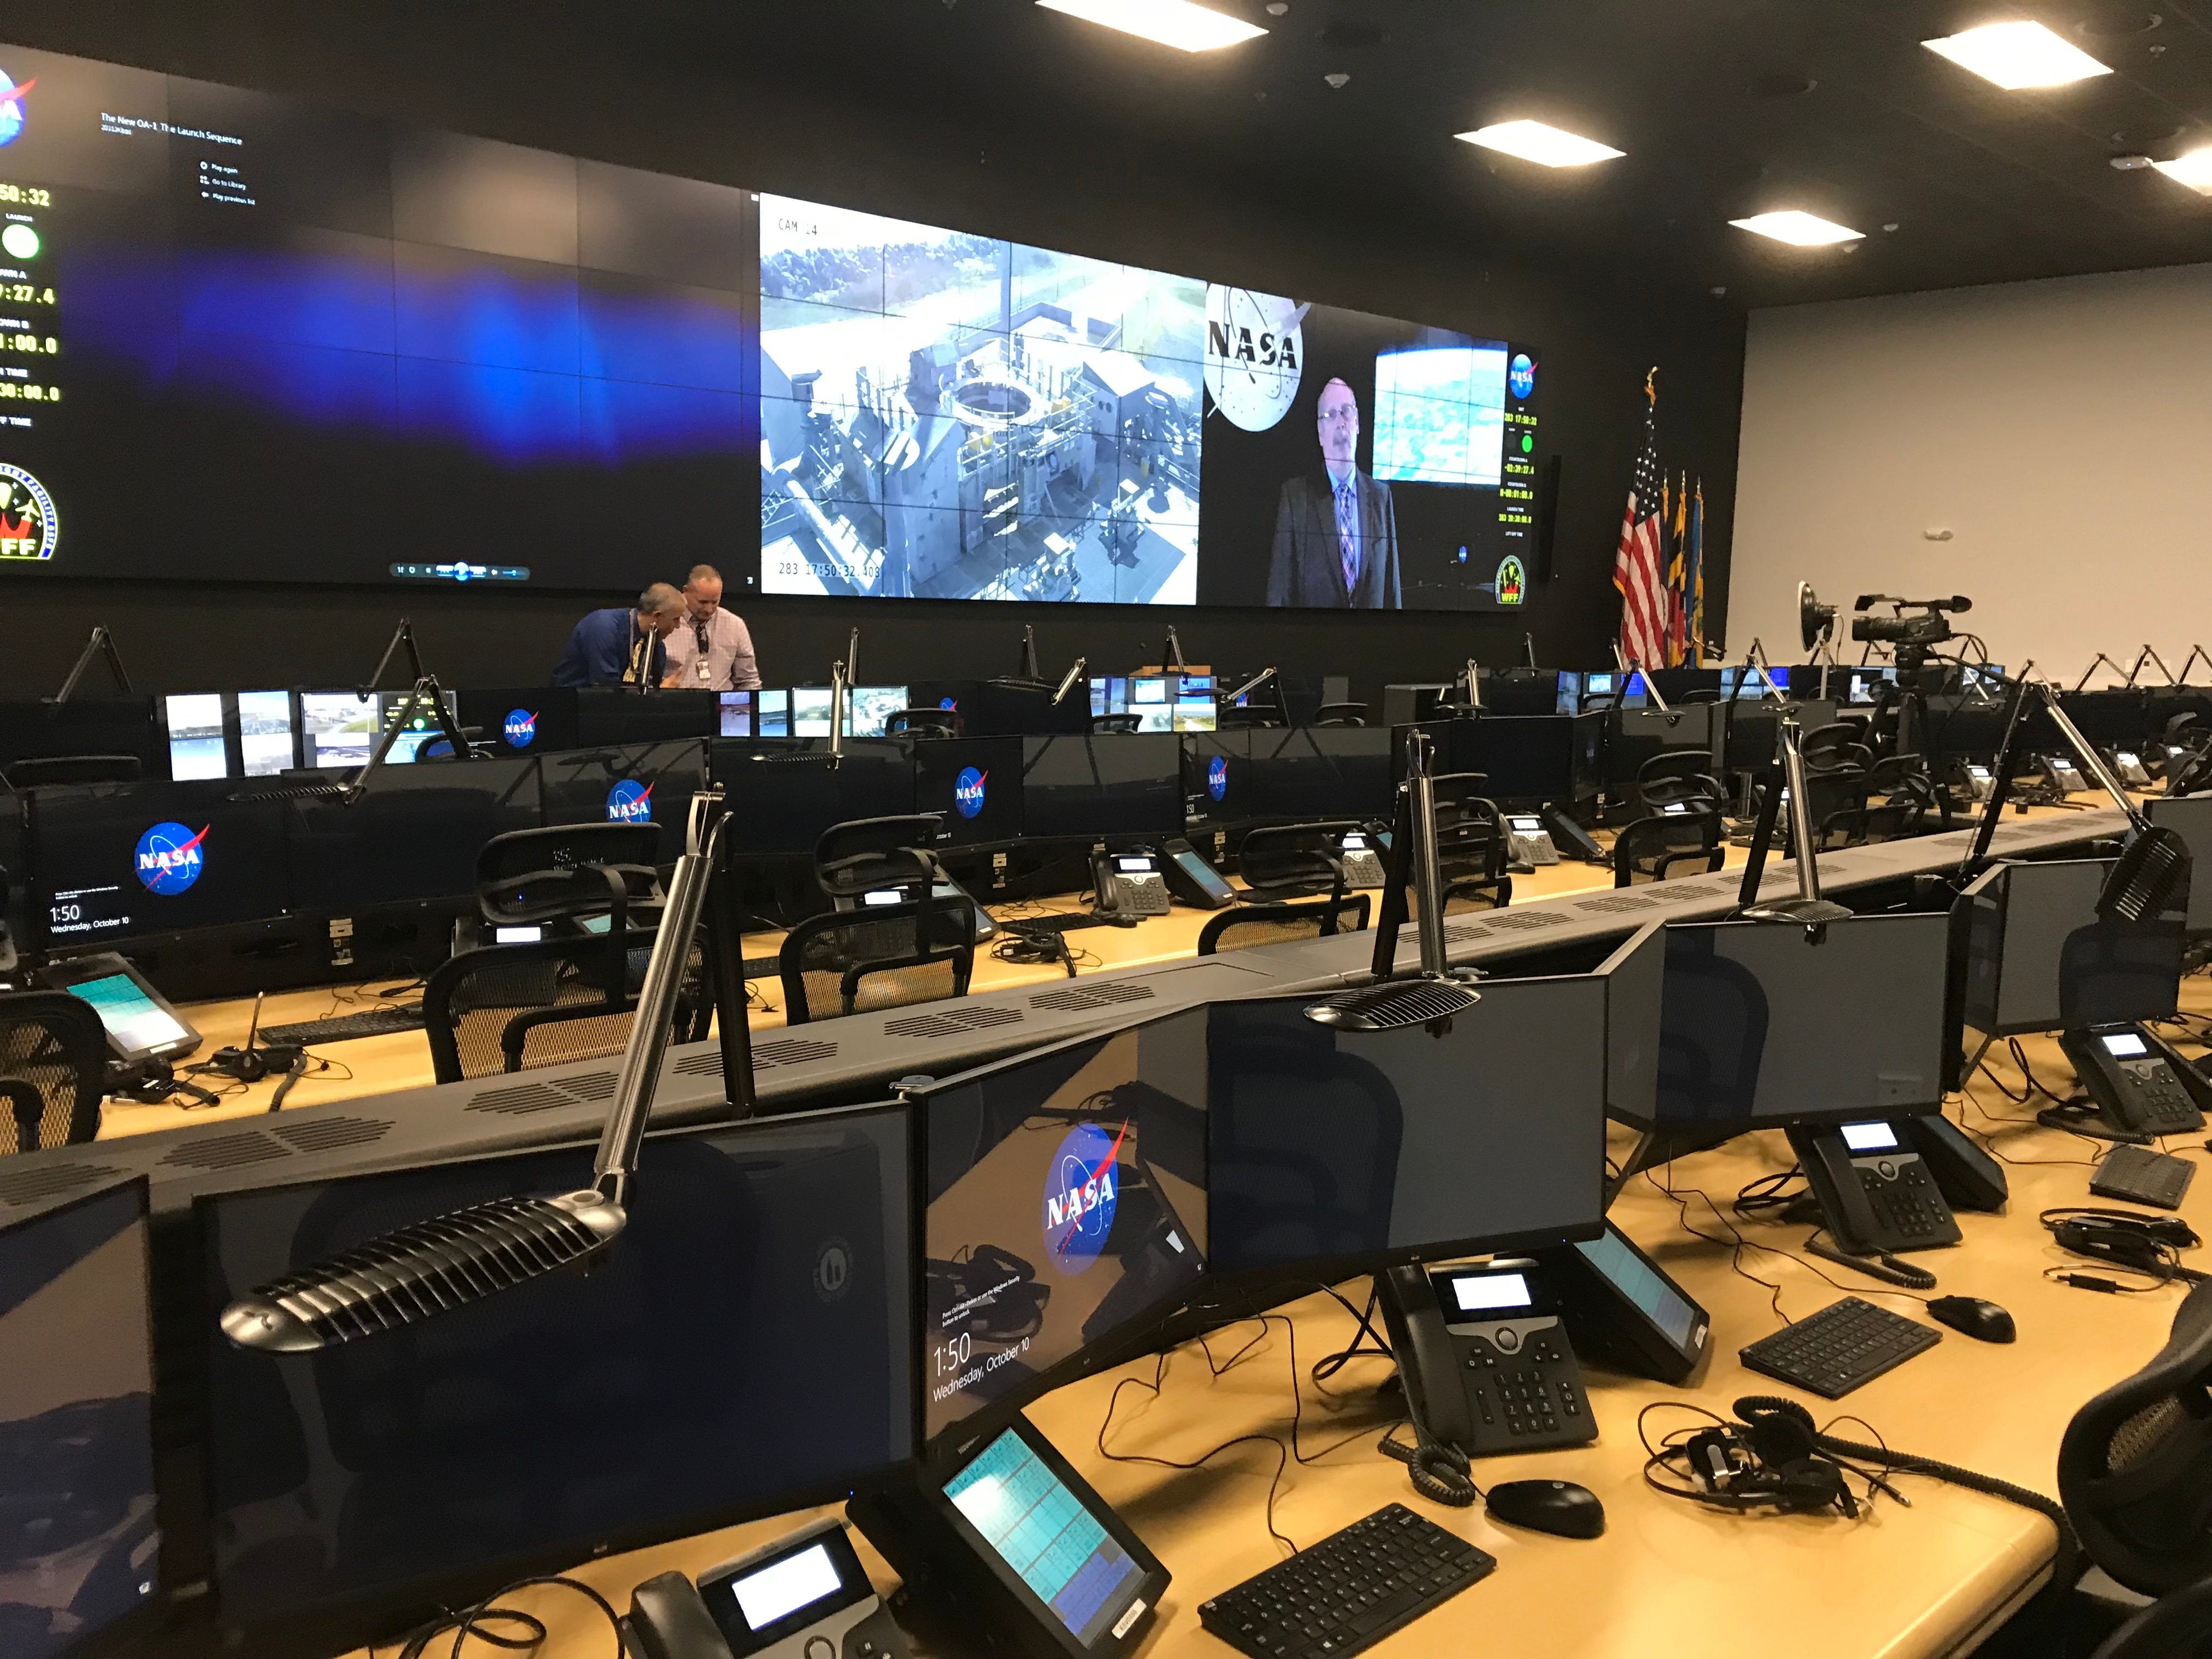 A view inside one of the command center's rooms.